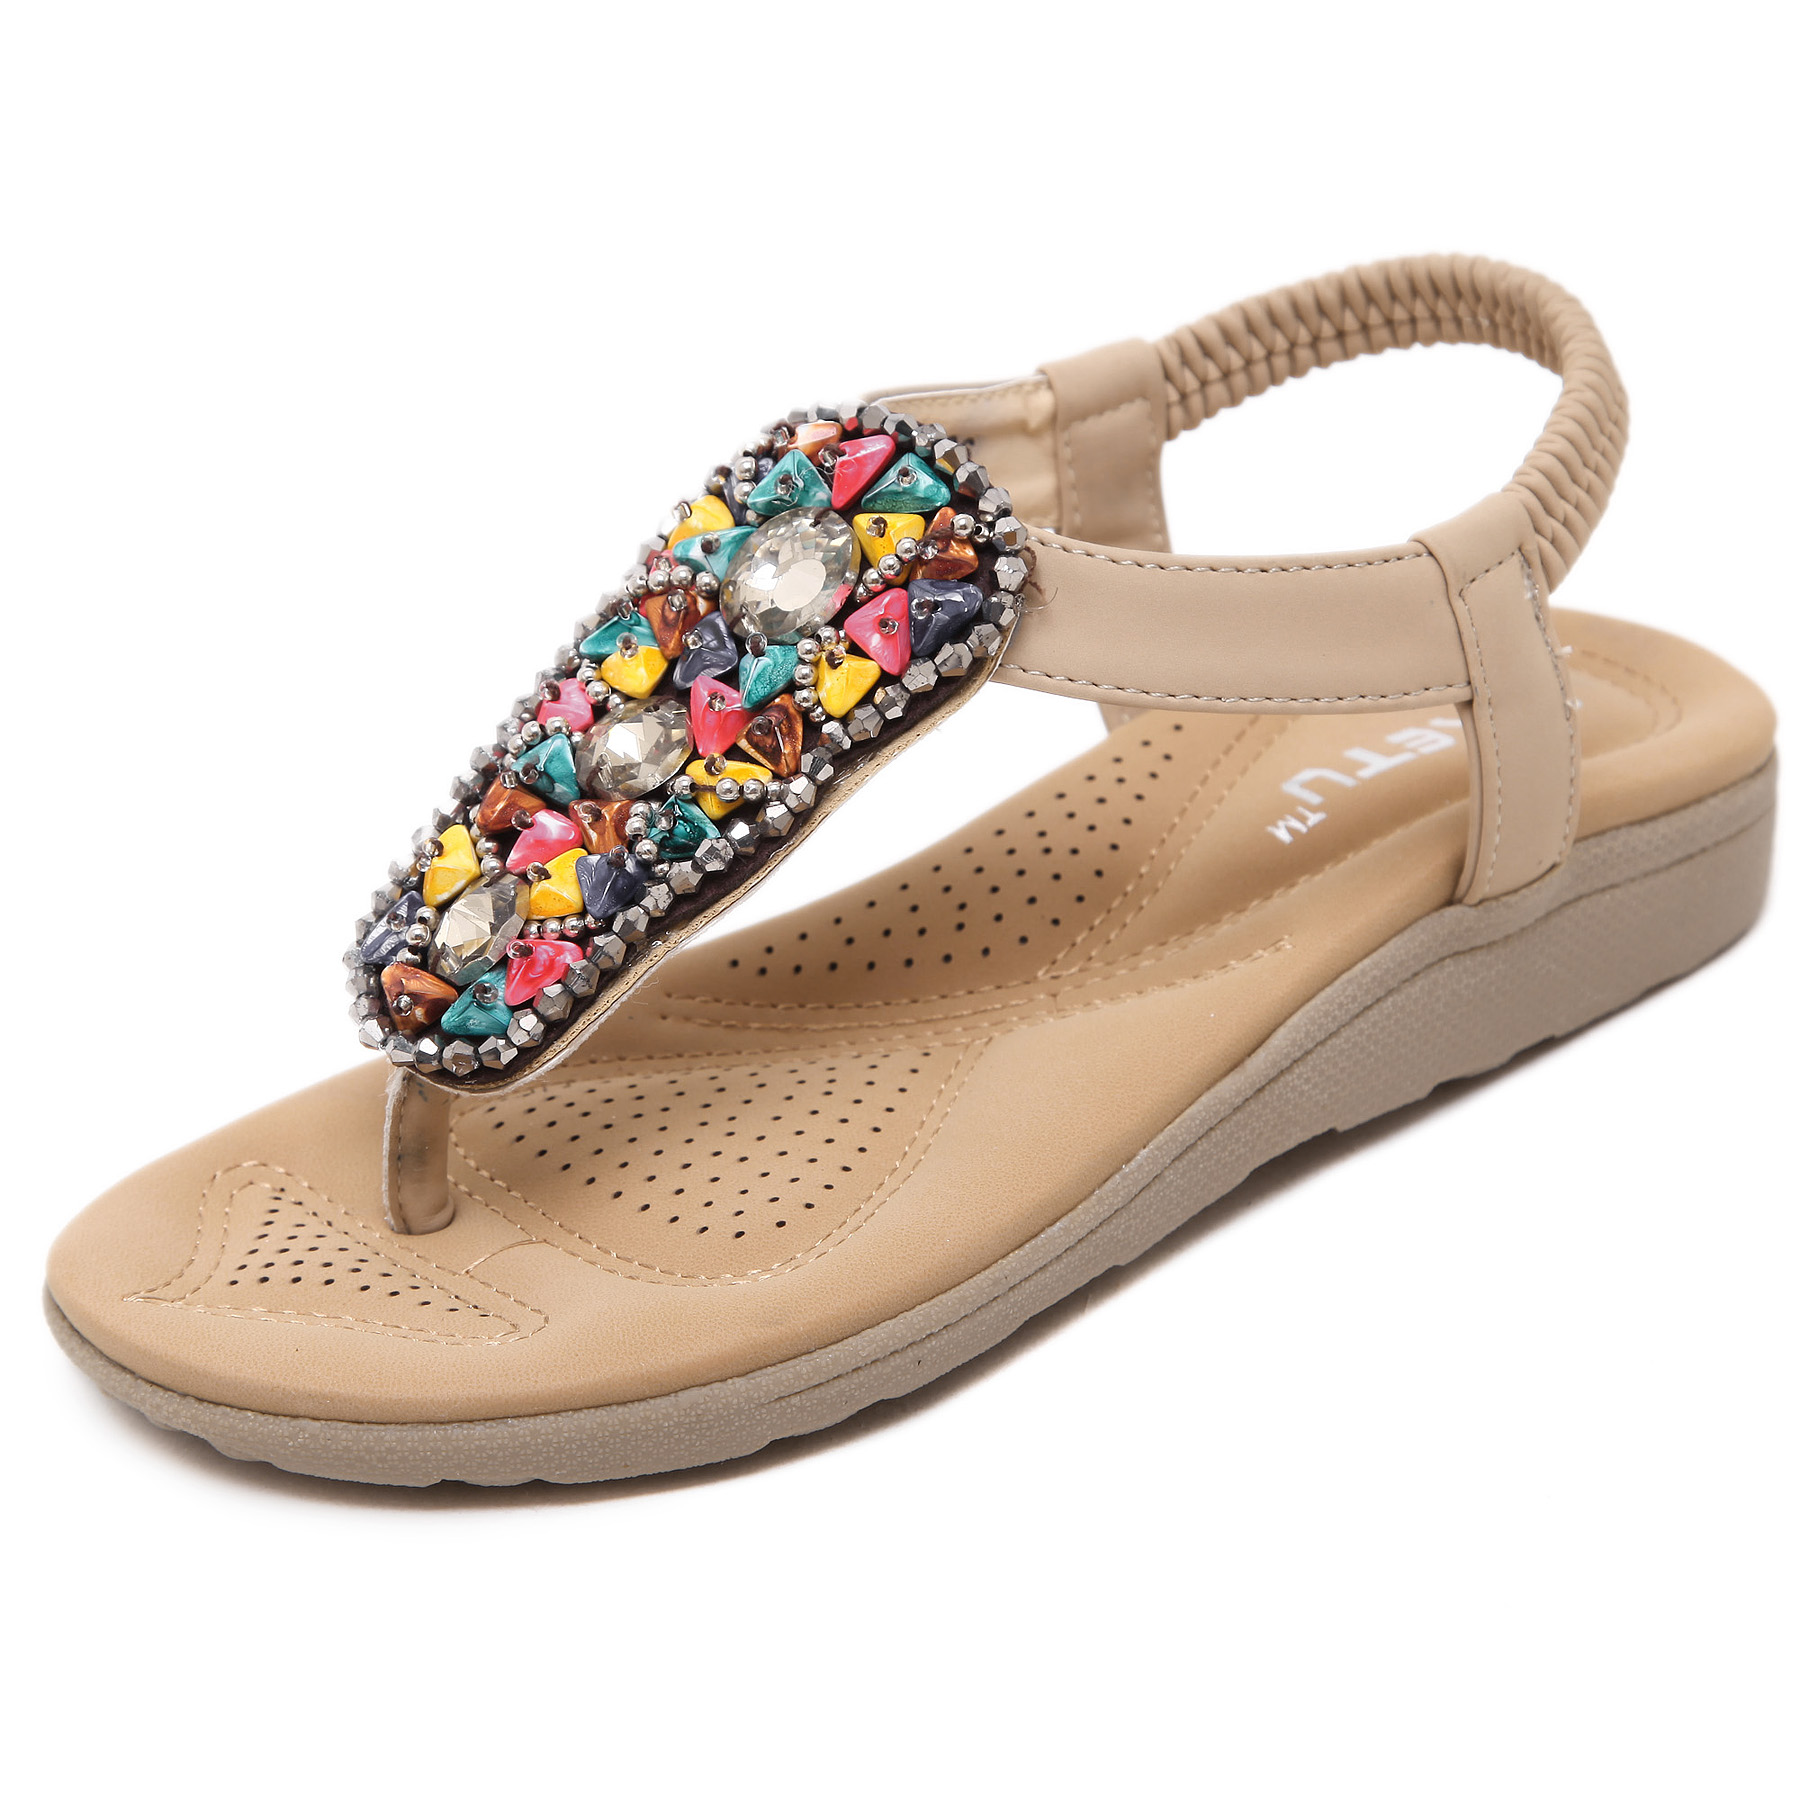 2017 New Summer Flat Sandals Summer Beads Bohemia Beach Flip Flops Women Shoes Sandles Zapatos Mujer Sandalias Shoes Woman zrx400 zxr400 zxr250 kle400 kle250 сандерс спереди и сзади поверните сигнал поворота